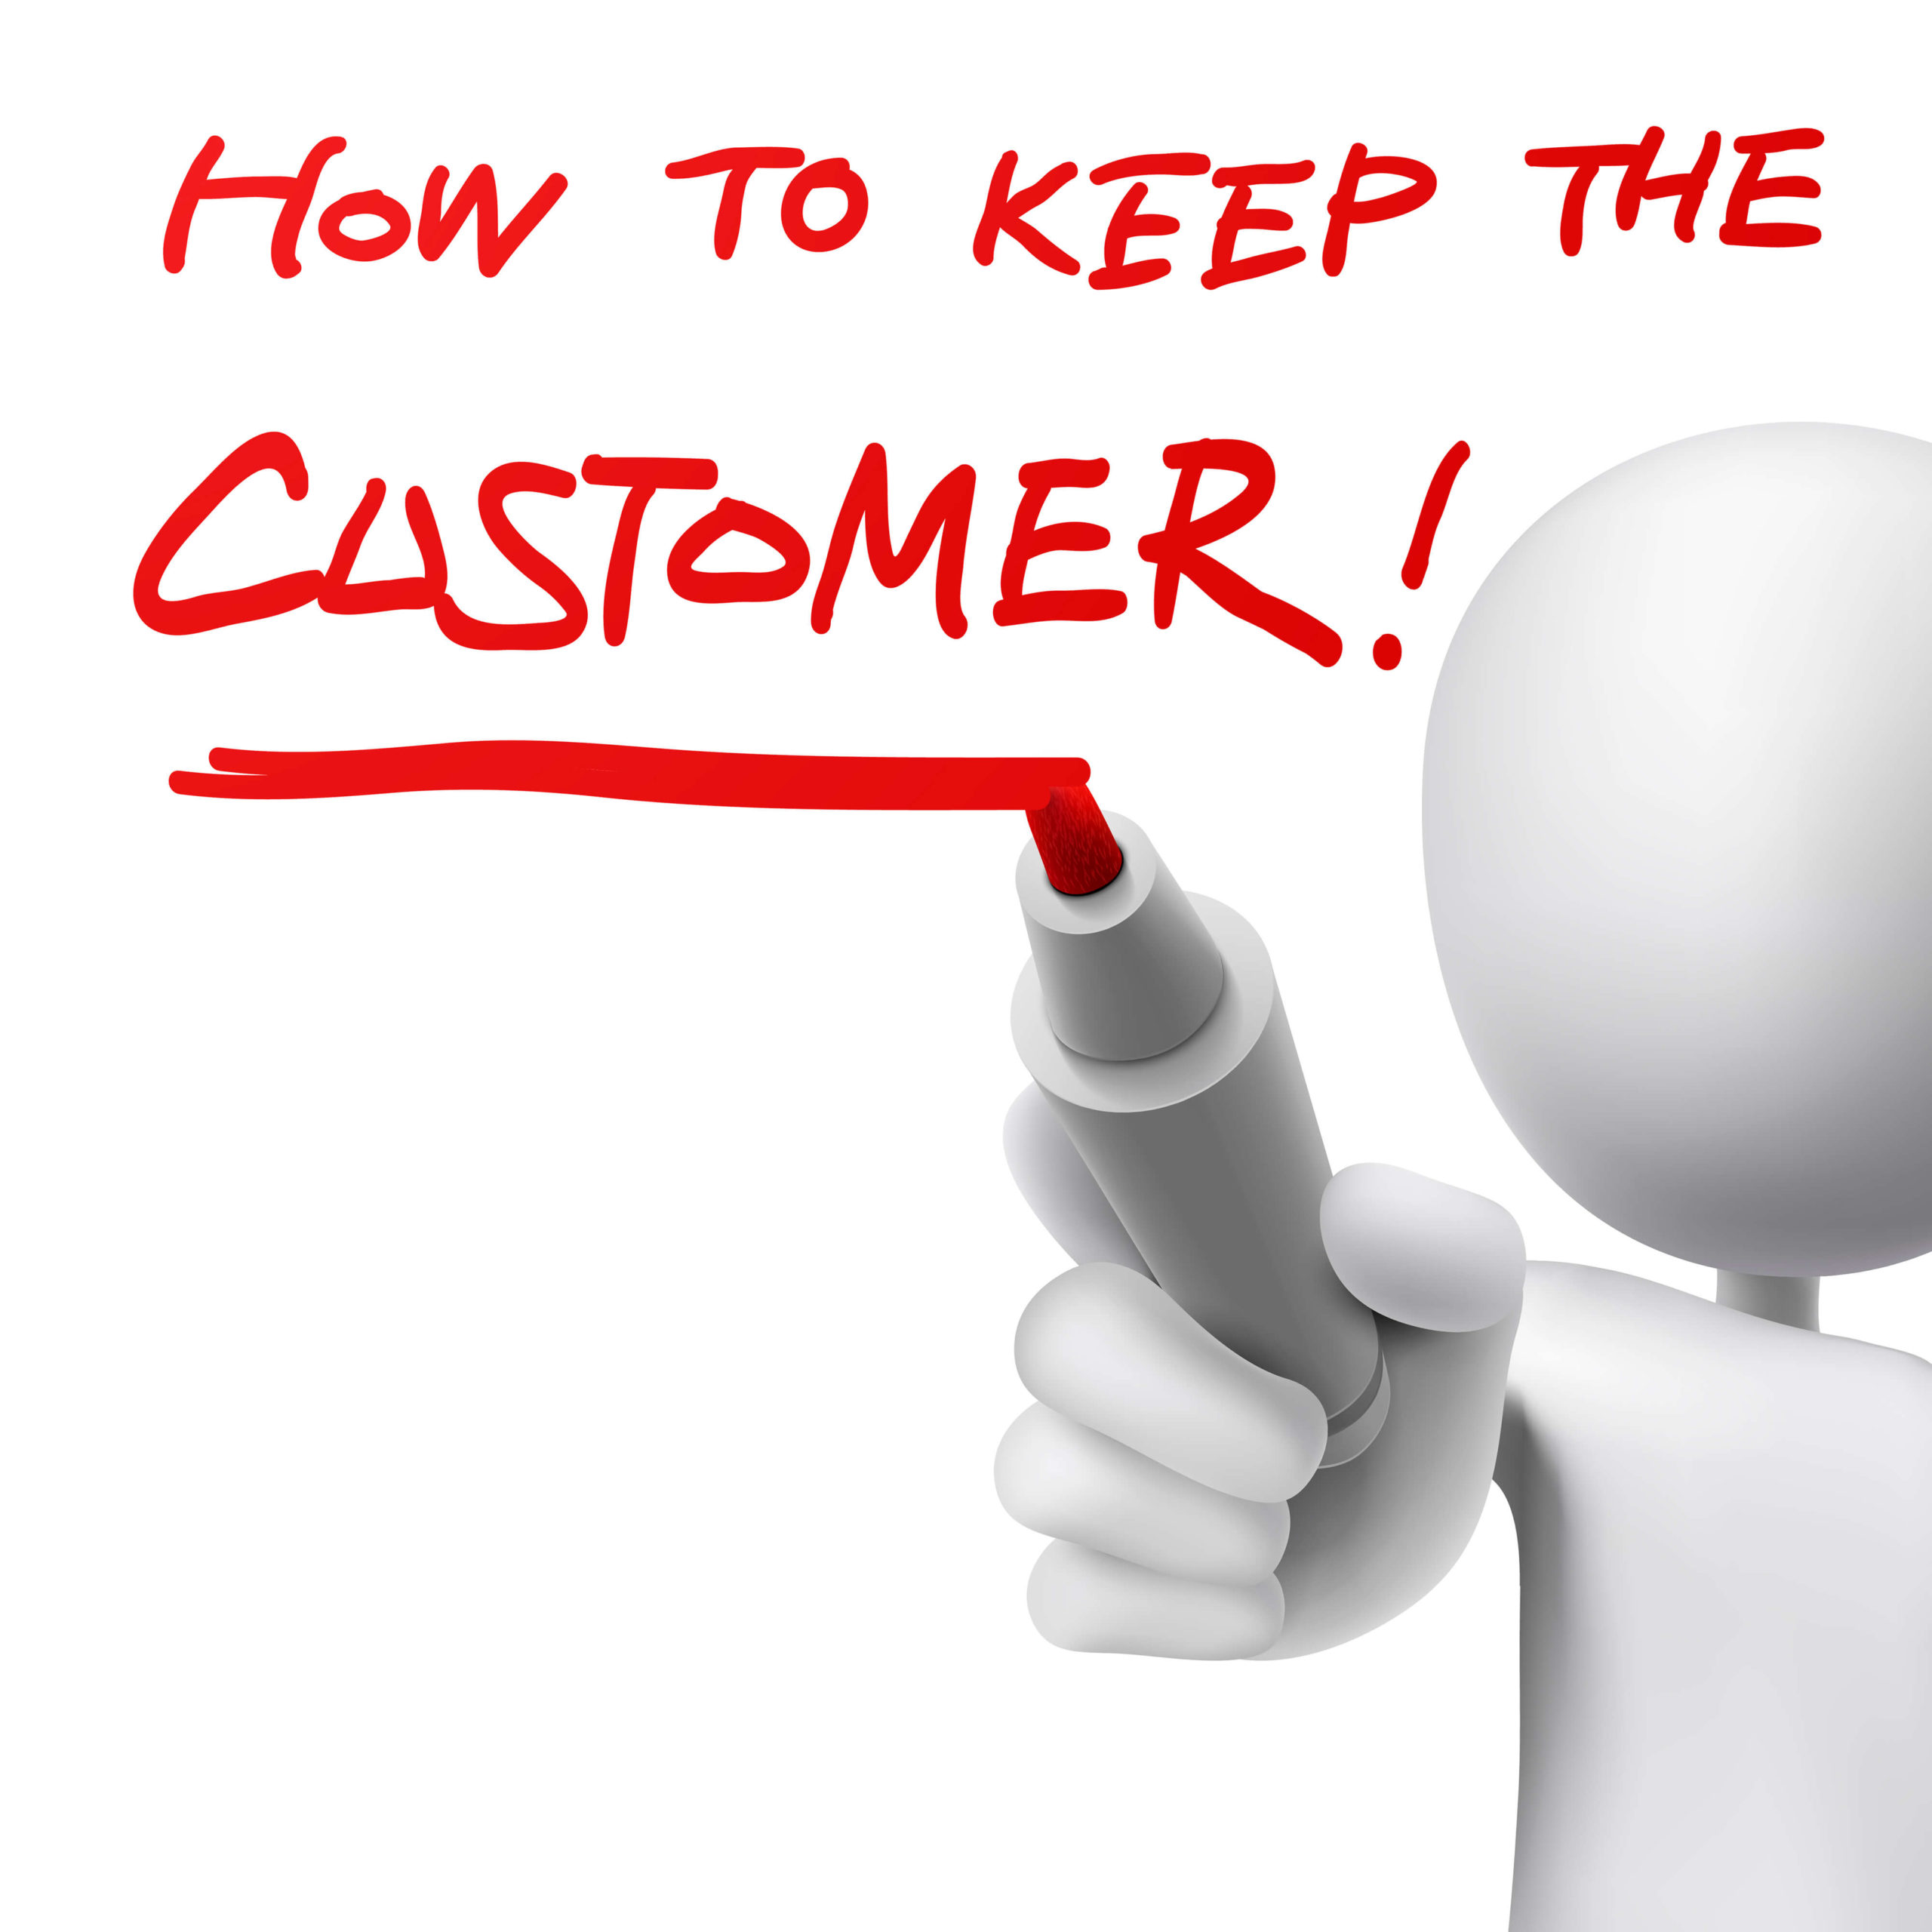 image showing how to keep a customer to enable better CPA targeting.